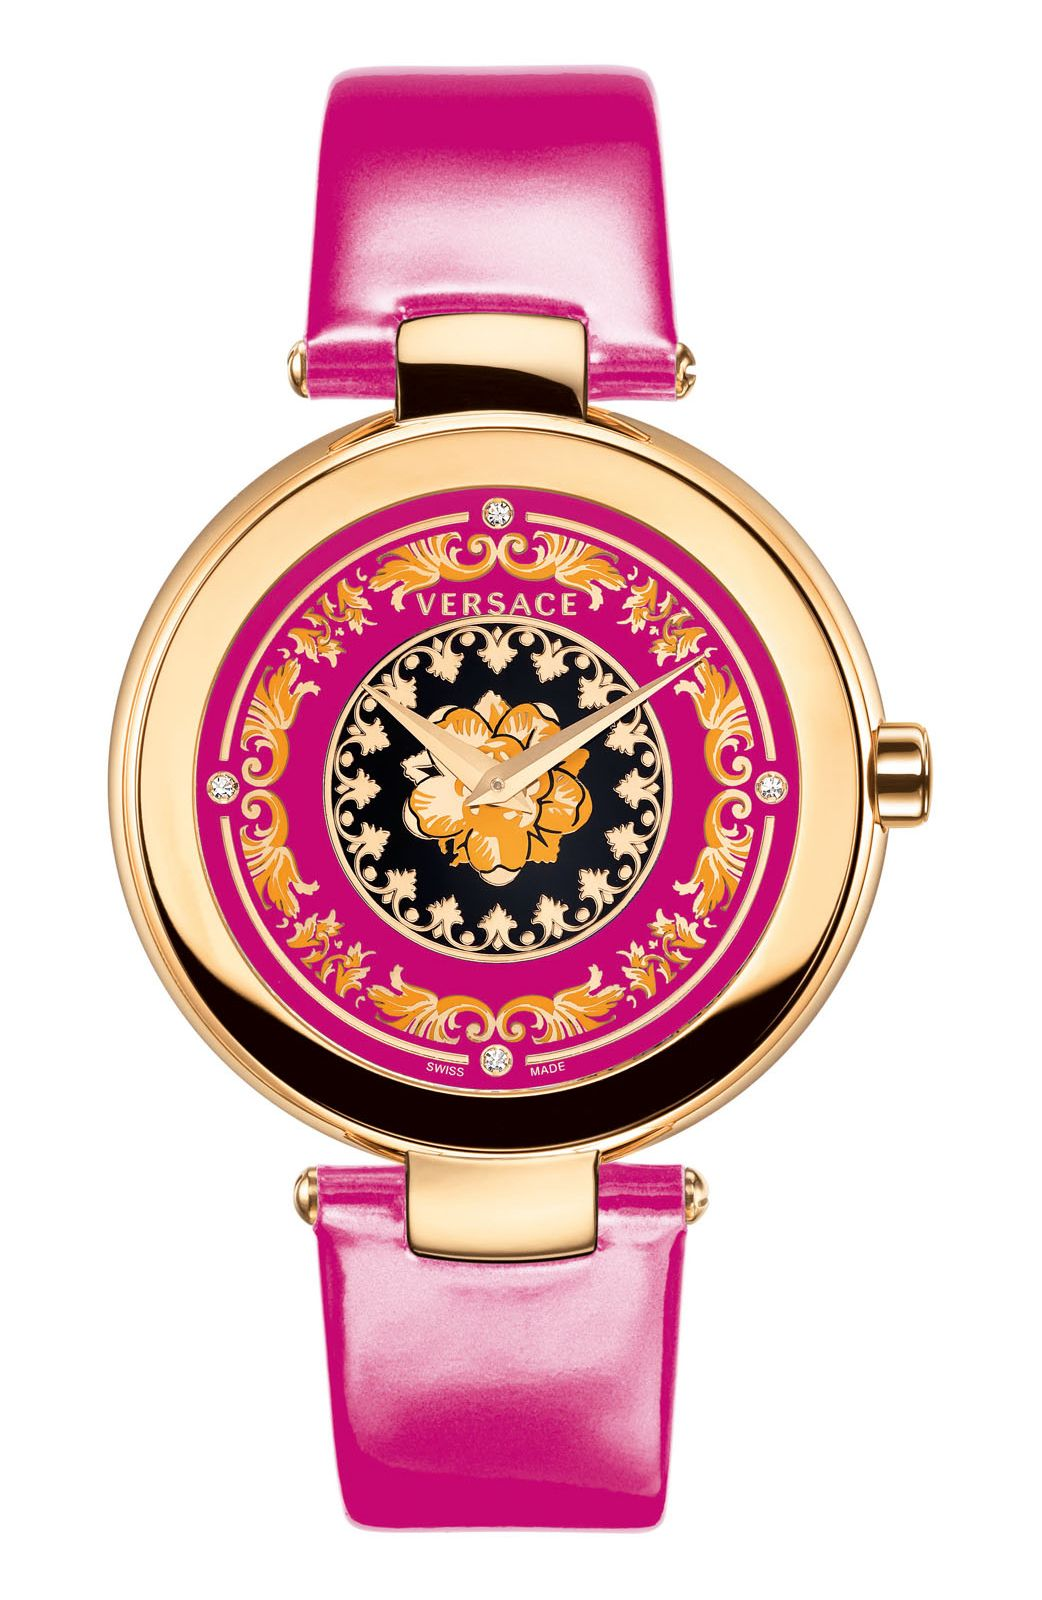 47963dd1ce4 MYSTIQUE FOULARD BY VERSACE - SWISS QUARTZ MOVEMENT RONDA 762.2 - 38 MM  STAINLESS STEEL IPRG 4N ROUND CASE - ENAMELED DIAL WITH ROSE GOLD BAROQUE  PATTERN